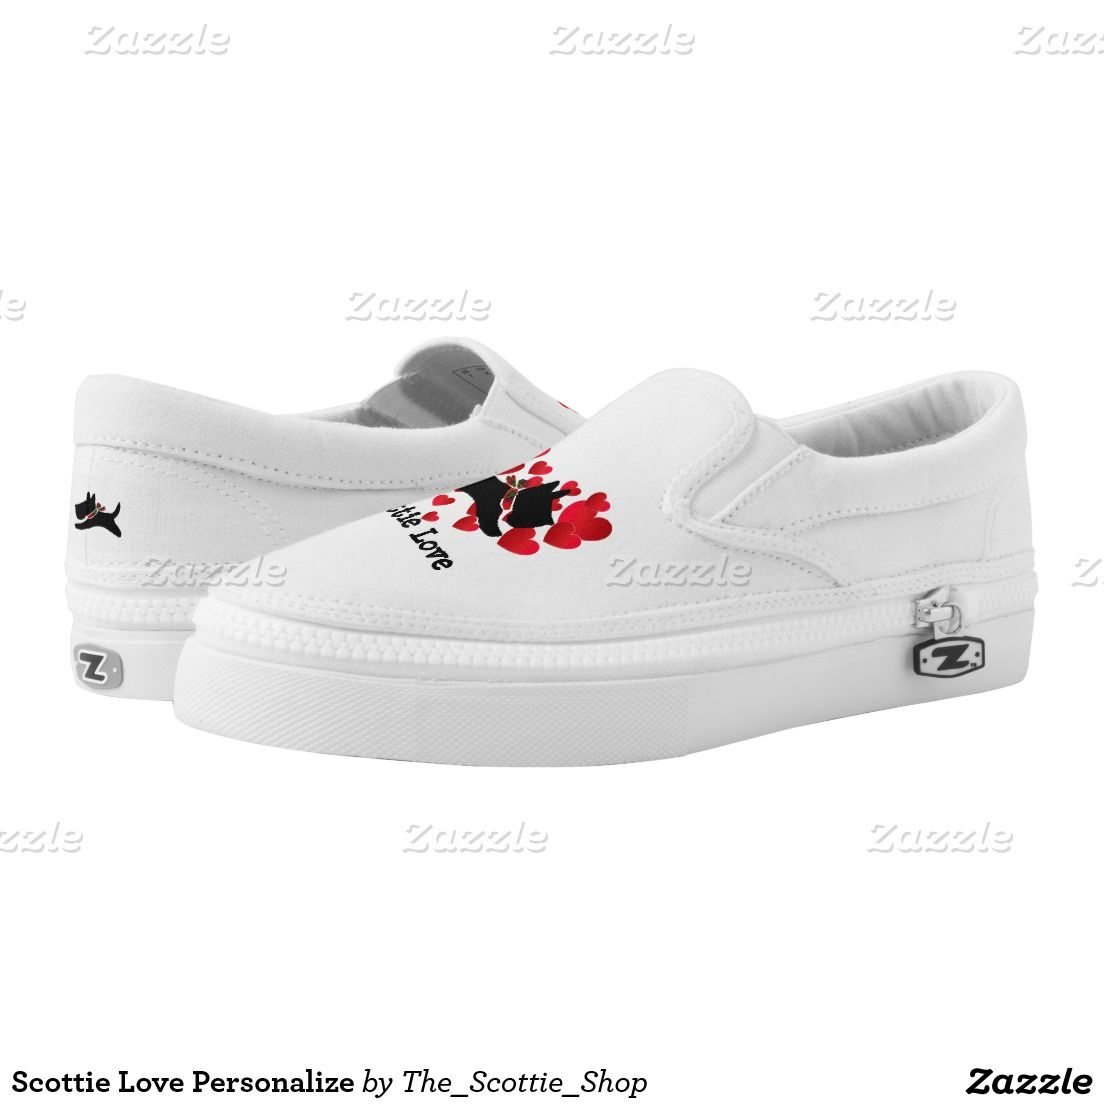 Scottie Love Personalize Printed Shoes